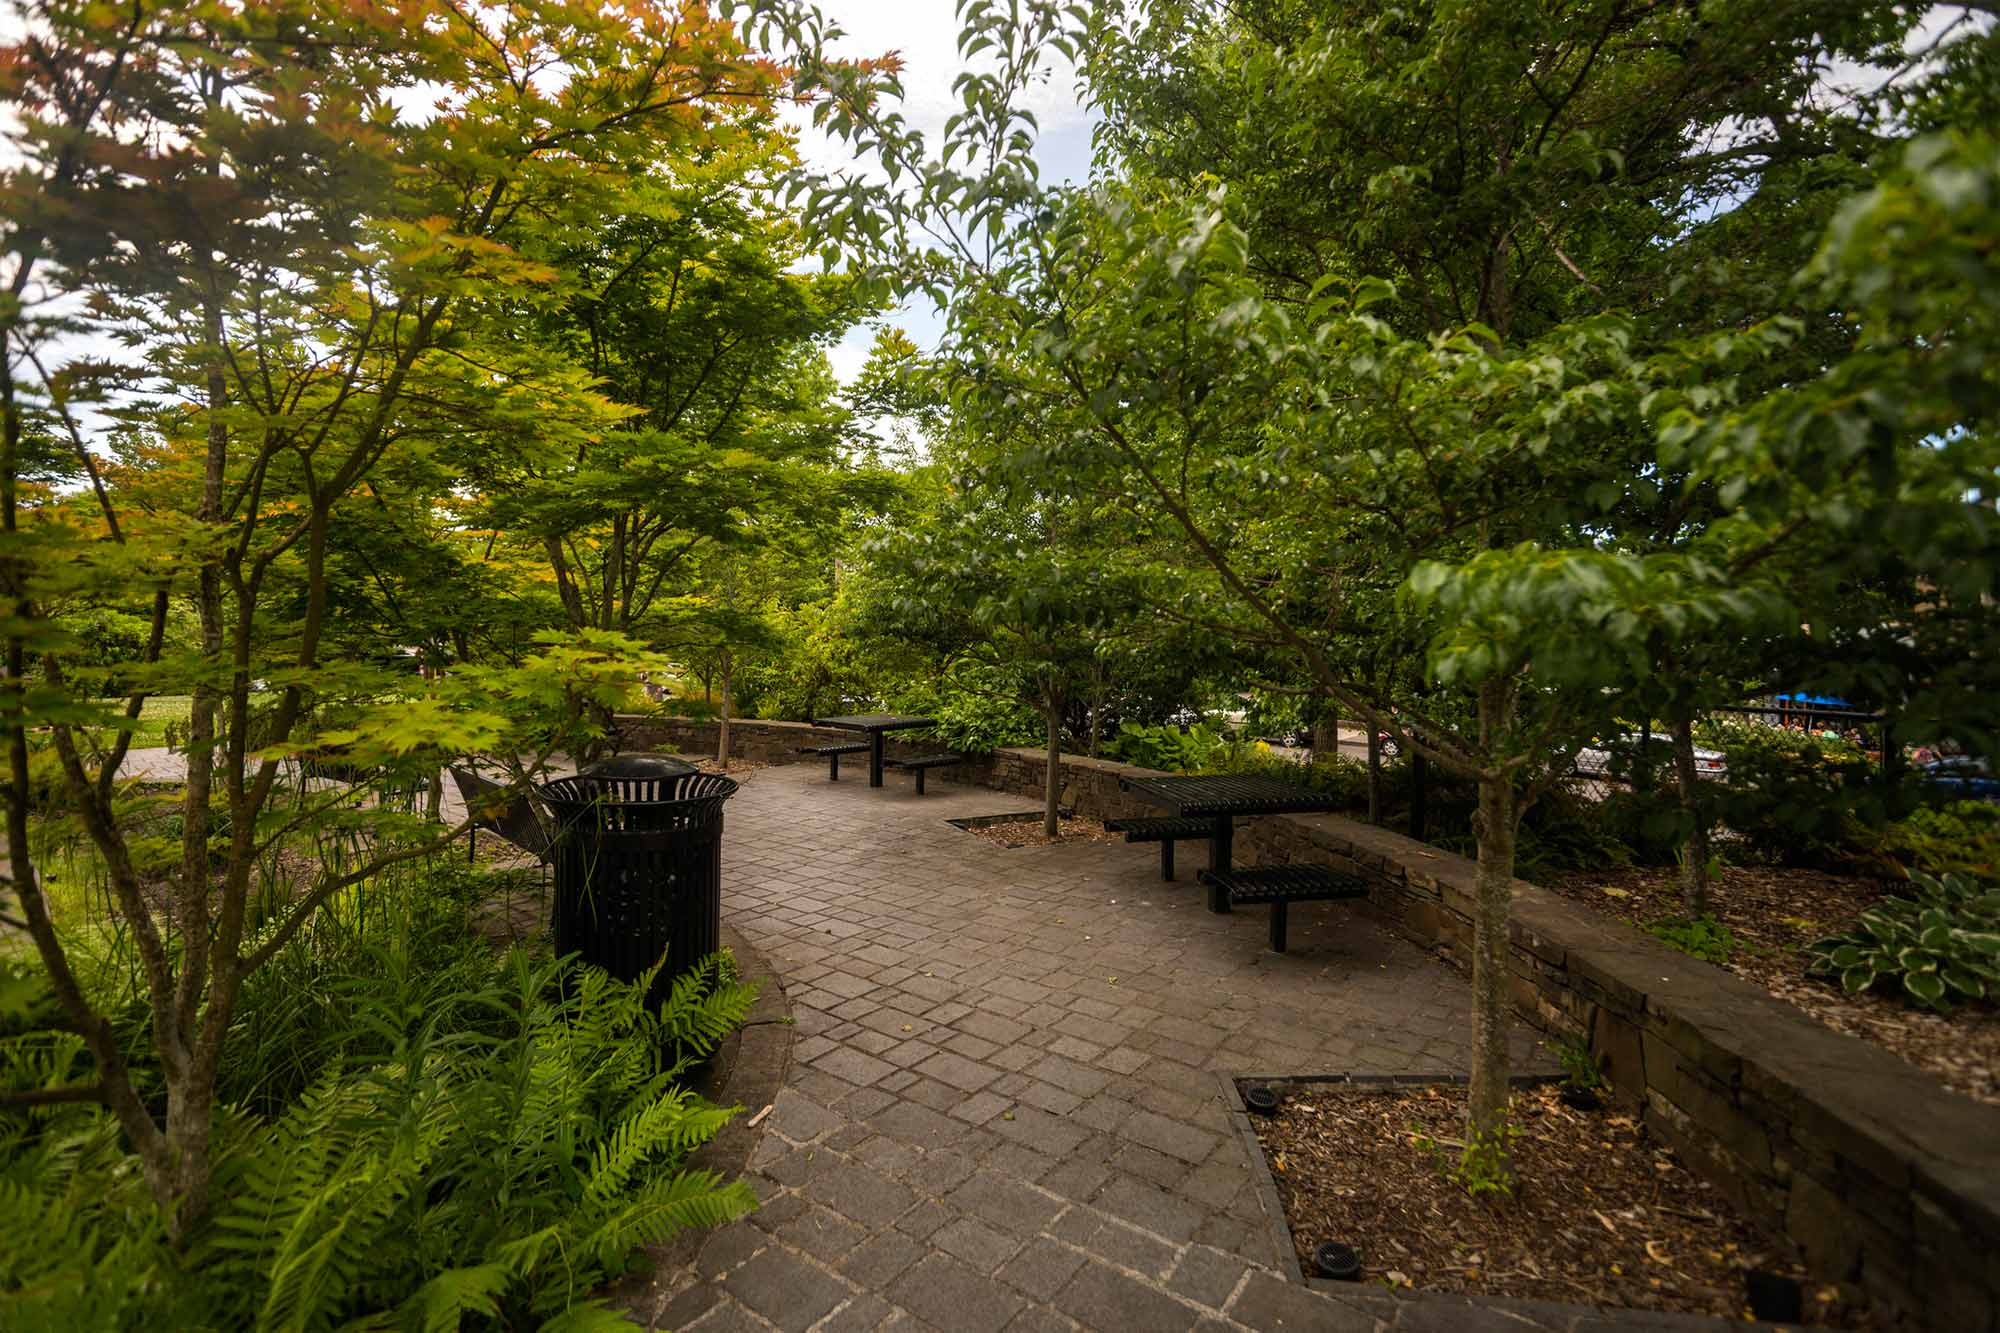 A brown brick pathway with small benches and tables winds around dense trees and bushes